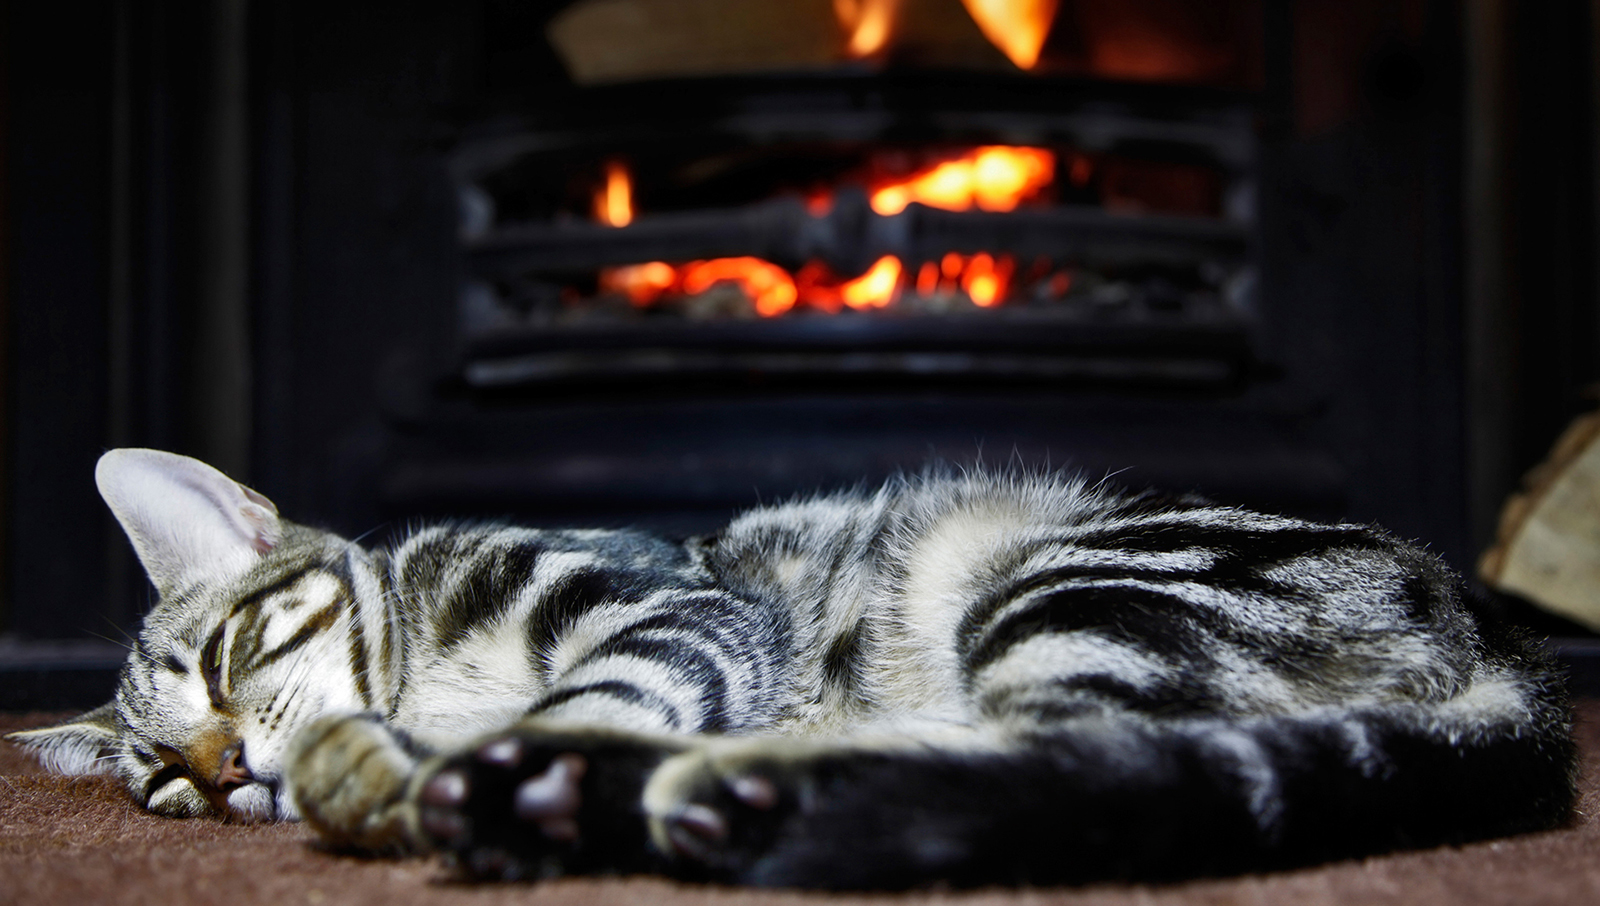 cat-sleeping-fireplace-01 - Cats in the City